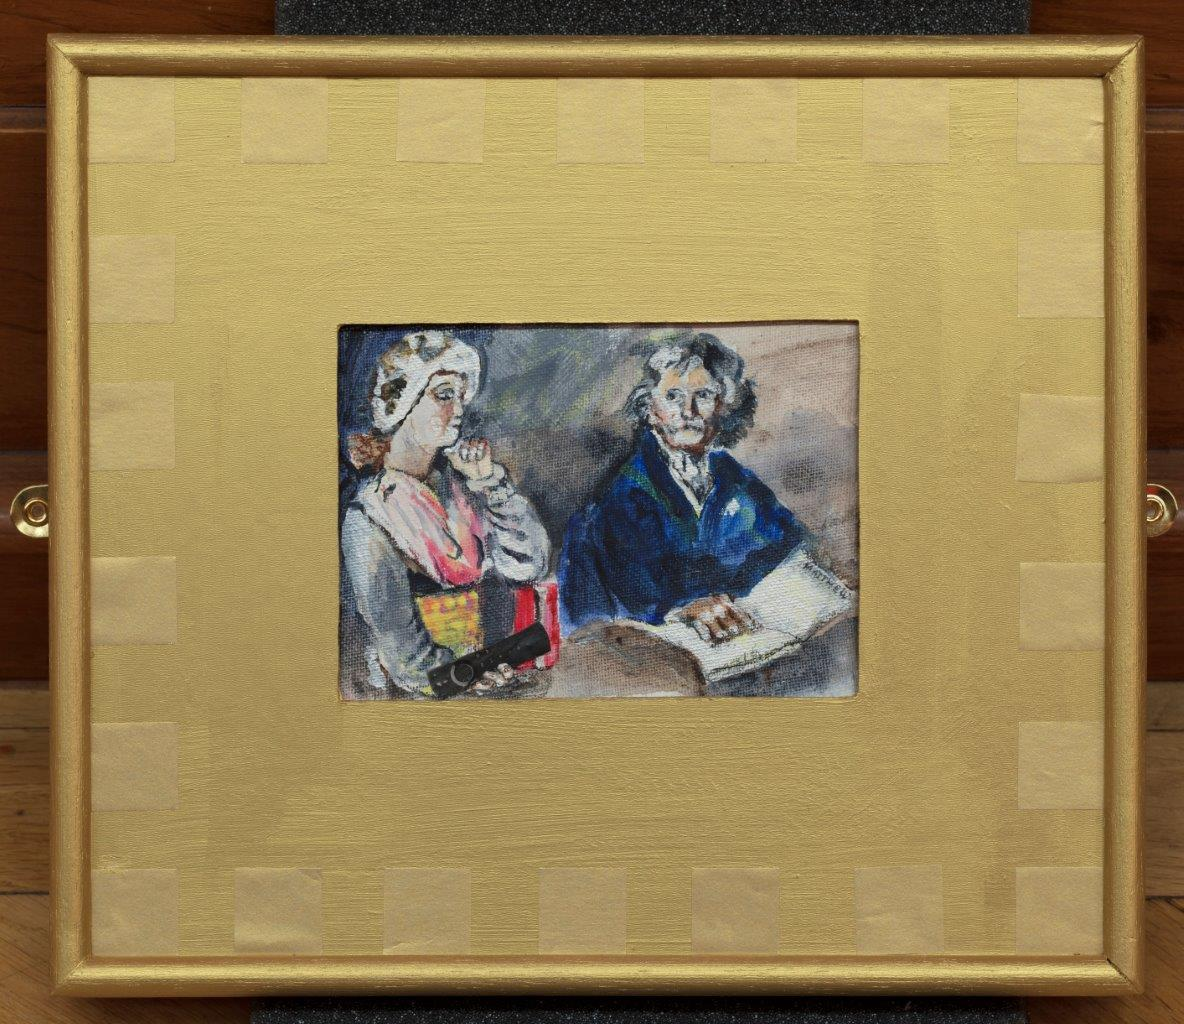 Painting of a man reading while a woman listens to music